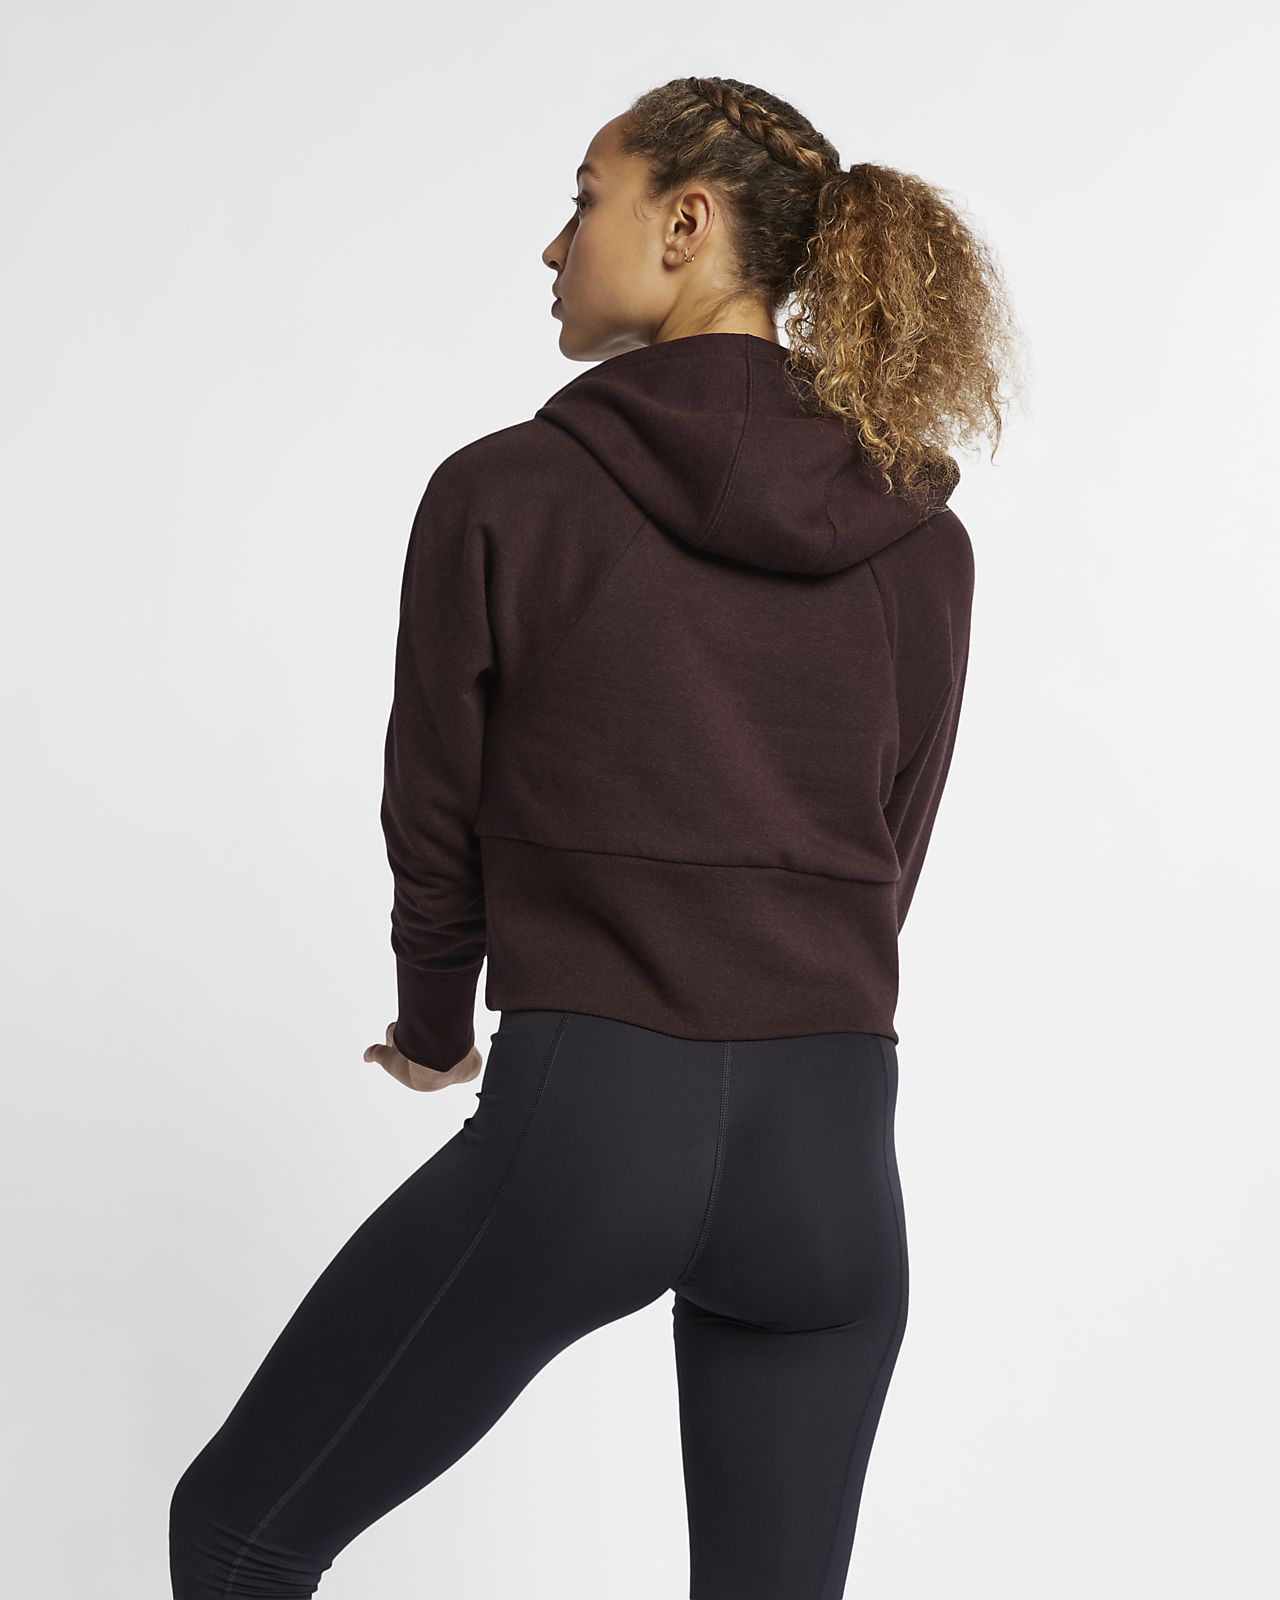 official photos 0887a 07a1b Nike Studio Women's Yoga Training Pullover Hoodie